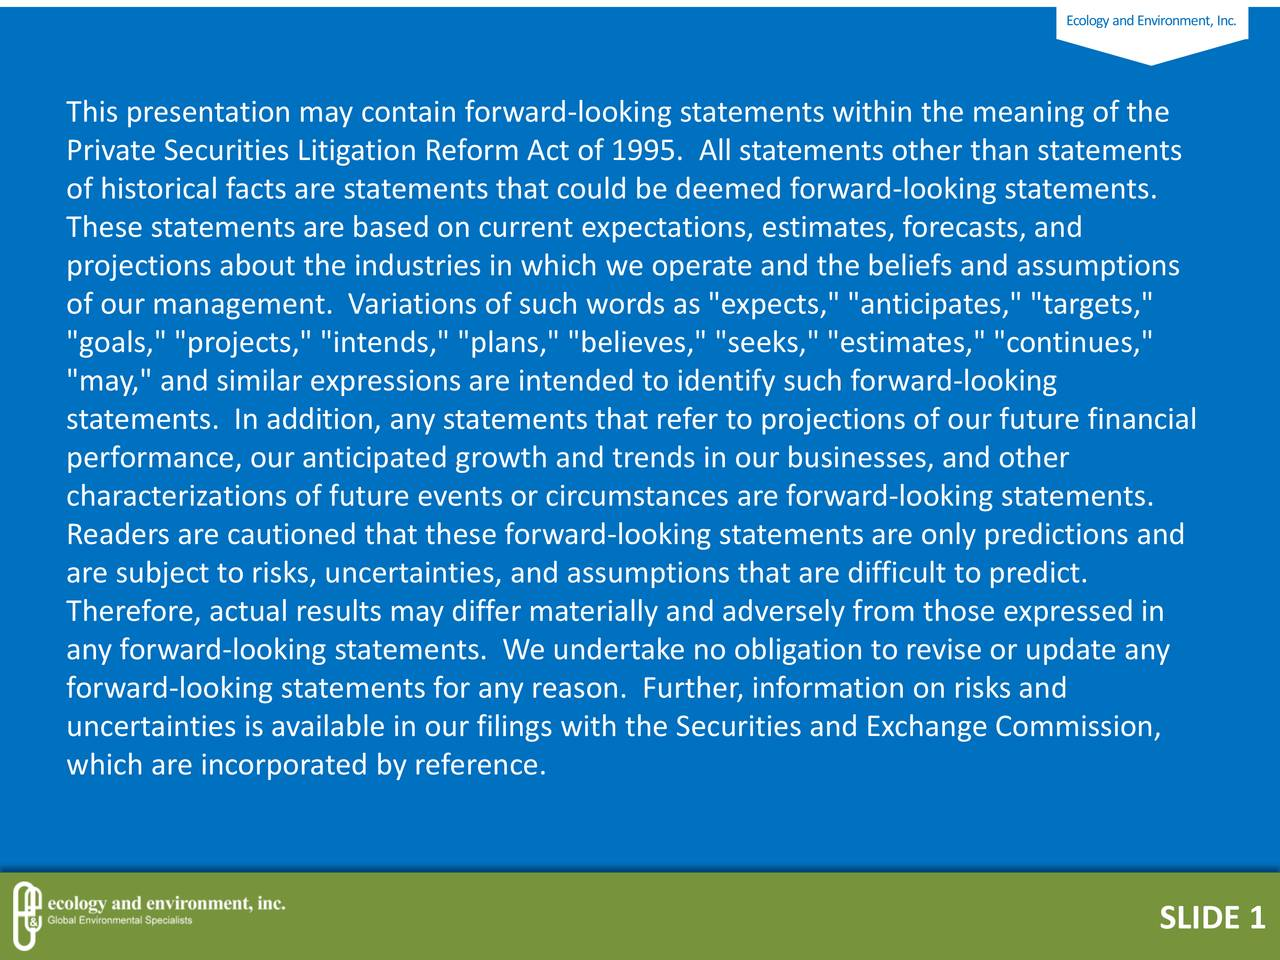 "This presentation may contain forward-looking statements within the meaning of the Private Securities Litigation Reform Act of 1995. All statements other than statements of historical facts are statements that could be deemed forward-looking statements. These statements are based on current expectations, estimates, forecasts, and projections about the industries in which we operate and the beliefs and assumptions of our management. Variations of such words as ""expects,"" ""anticipates,"" ""targets,"" ""goals,"" ""projects,"" ""intends,"" ""plans,"" ""believes,"" ""seeks,"" ""estimates,"" ""continues,"" ""may,"" and similar expressions are intended to identify such forward-looking statements. In addition, any statements that refer to projections of our future financial performance, our anticipated growth and trends in our businesses, and other characterizations of future events or circumstances are forward-looking statements. Readers are cautioned that these forward-looking statements are only predictions and are subject to risks, uncertainties, and assumptions that are difficult to predict. Therefore, actual results may differ materially and adversely from those expressed in any forward-looking statements. We undertake no obligation to revise or update any forward-looking statements for any reason. Further, information on risks and uncertainties is available in our filings with the Securities and Exchange Commission, which are incorporated by reference. 2 SLIDE 1"